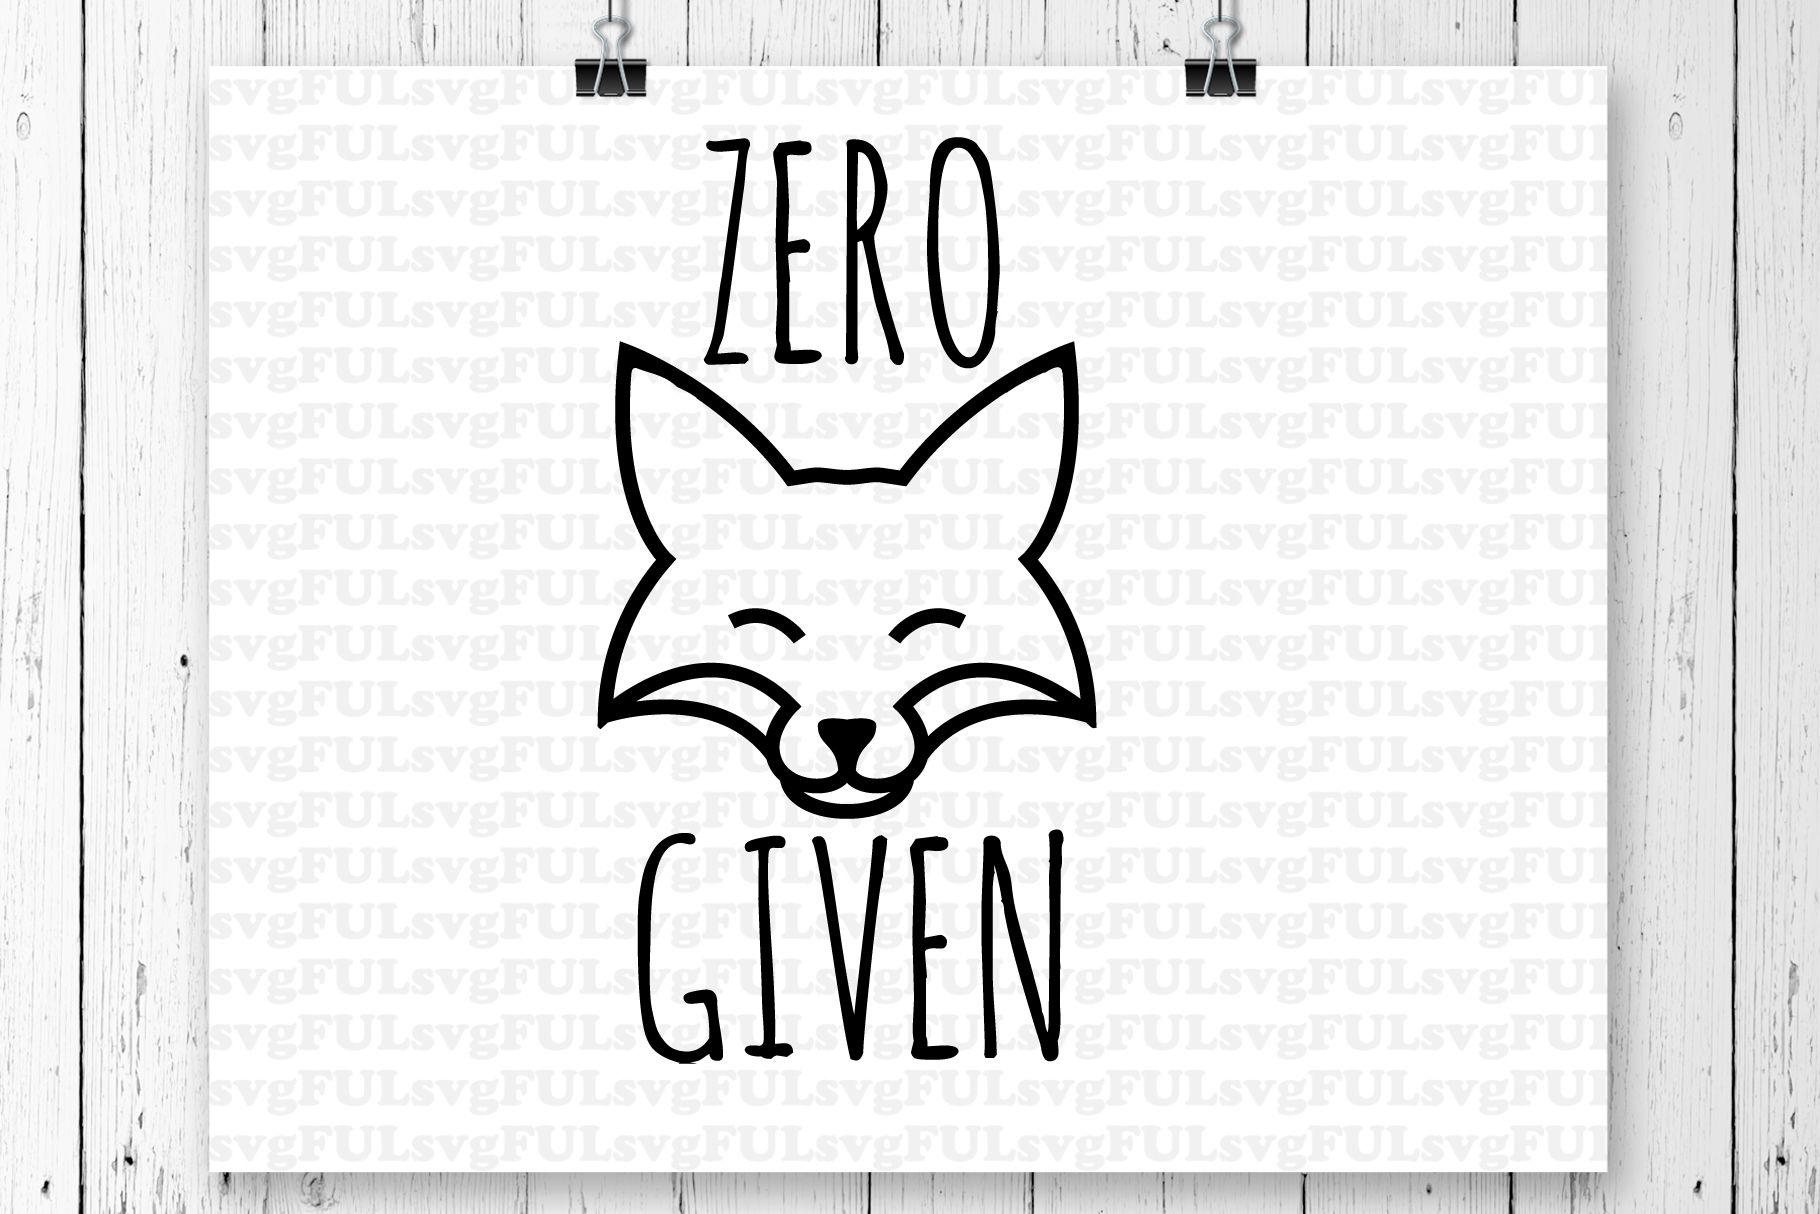 Zero fox given clipart banner black and white stock Zero Fox Given SVG Clip Art | cricut | Zero fox given, Clip ... banner black and white stock